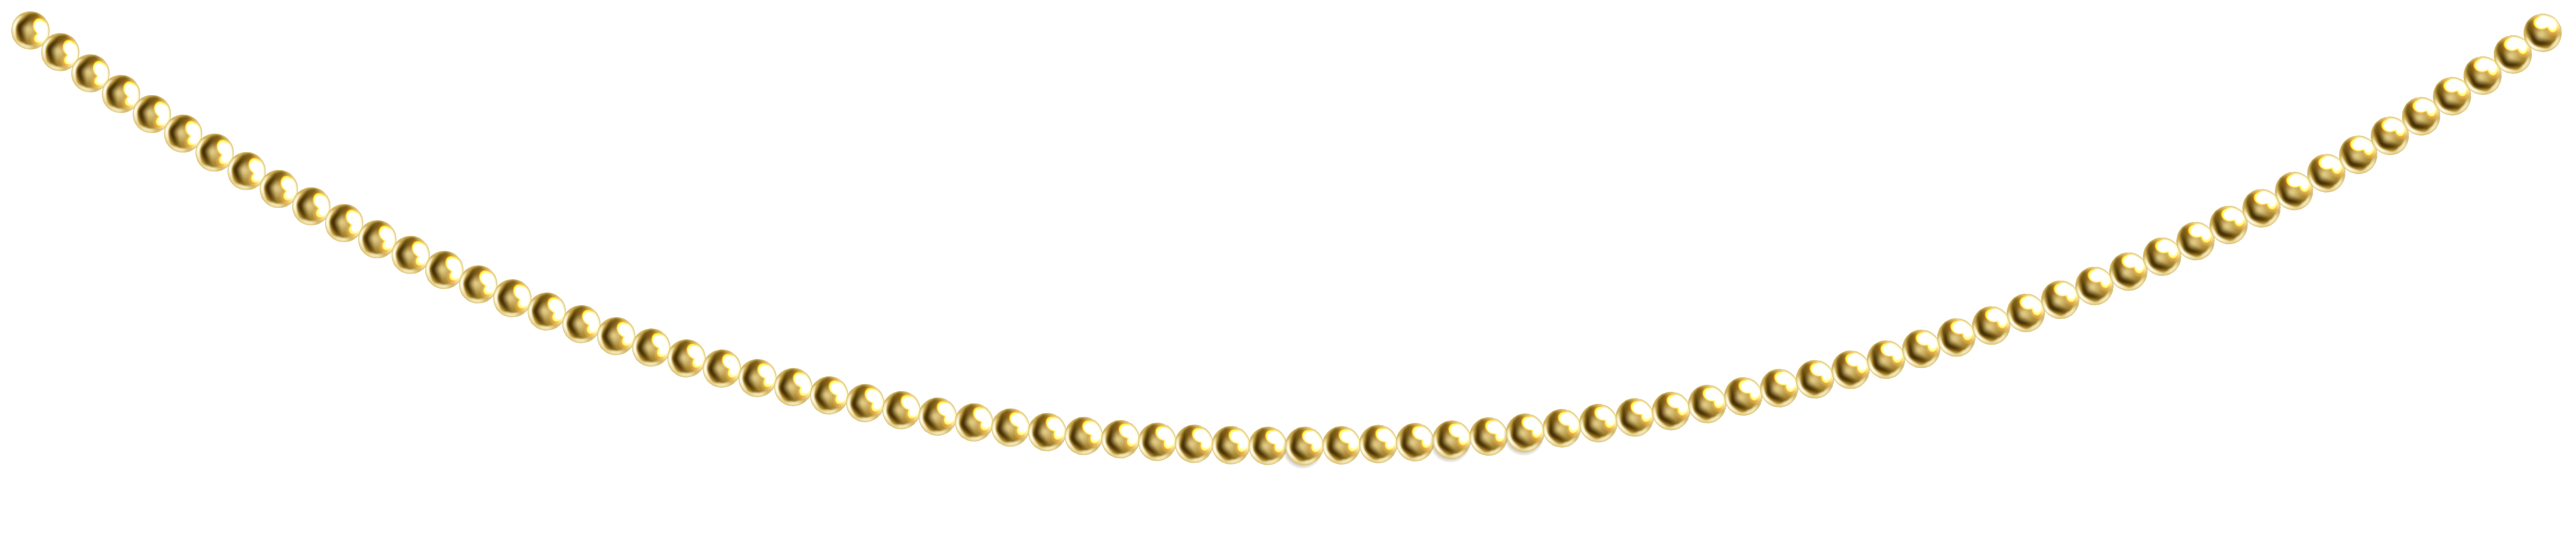 Gold Beads Decoration PNG Clip Art Image.